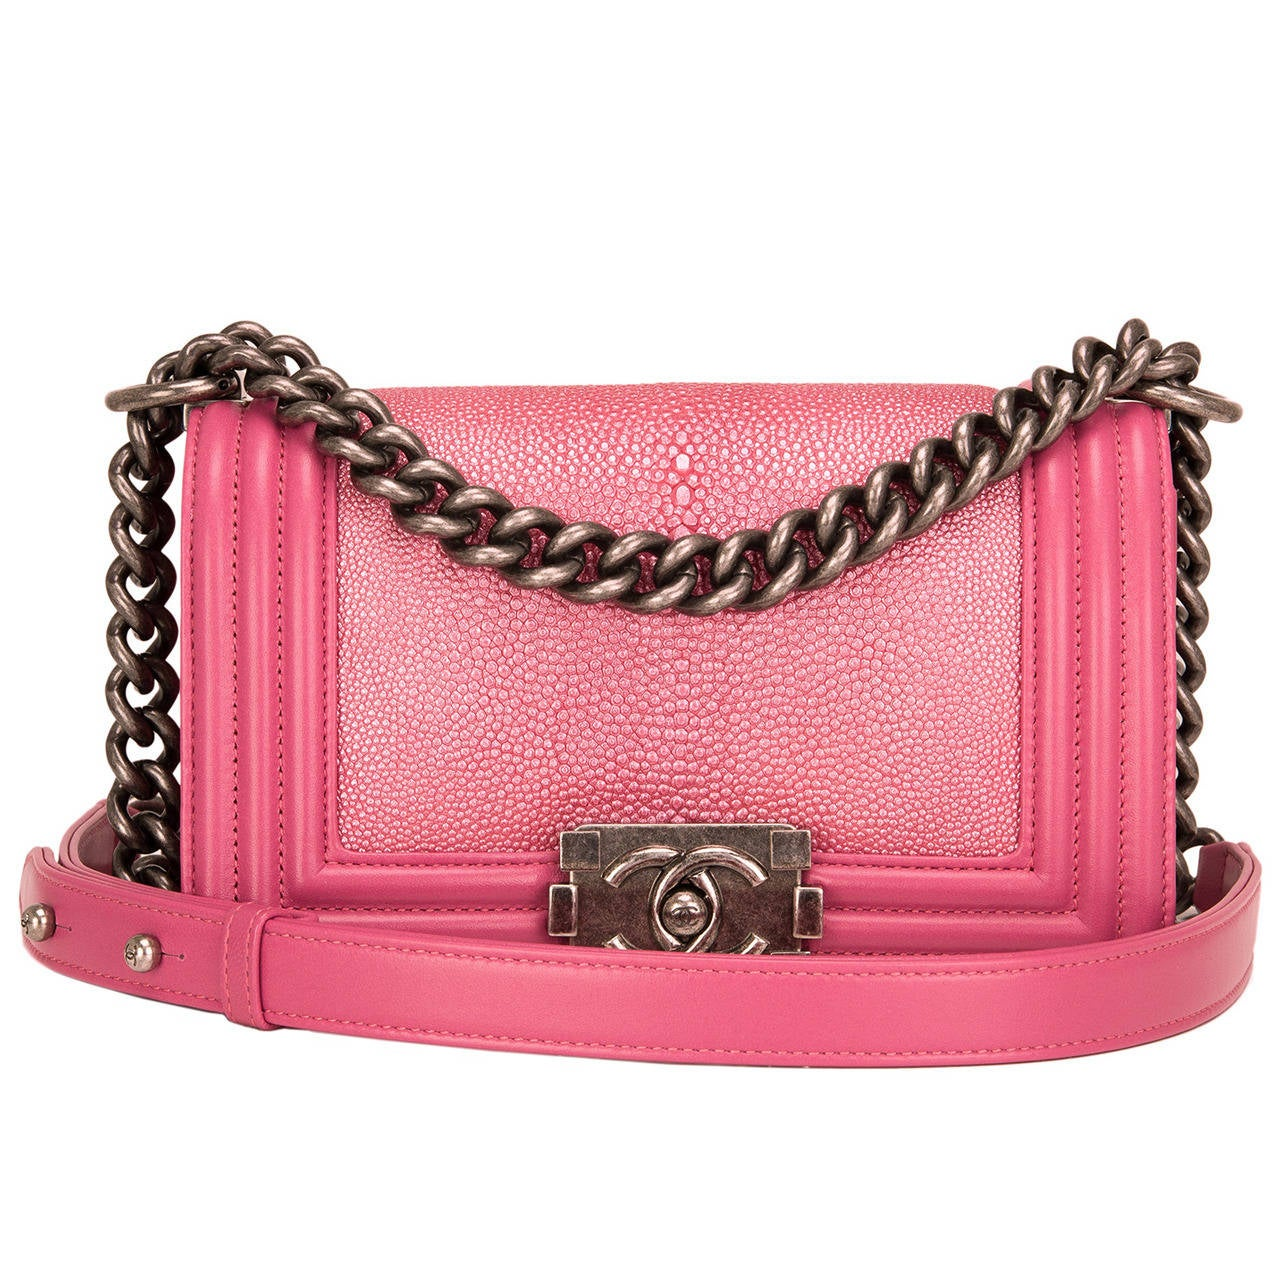 Chanel Metallic Pink Stingray Small Boy Bag At 1stdibs